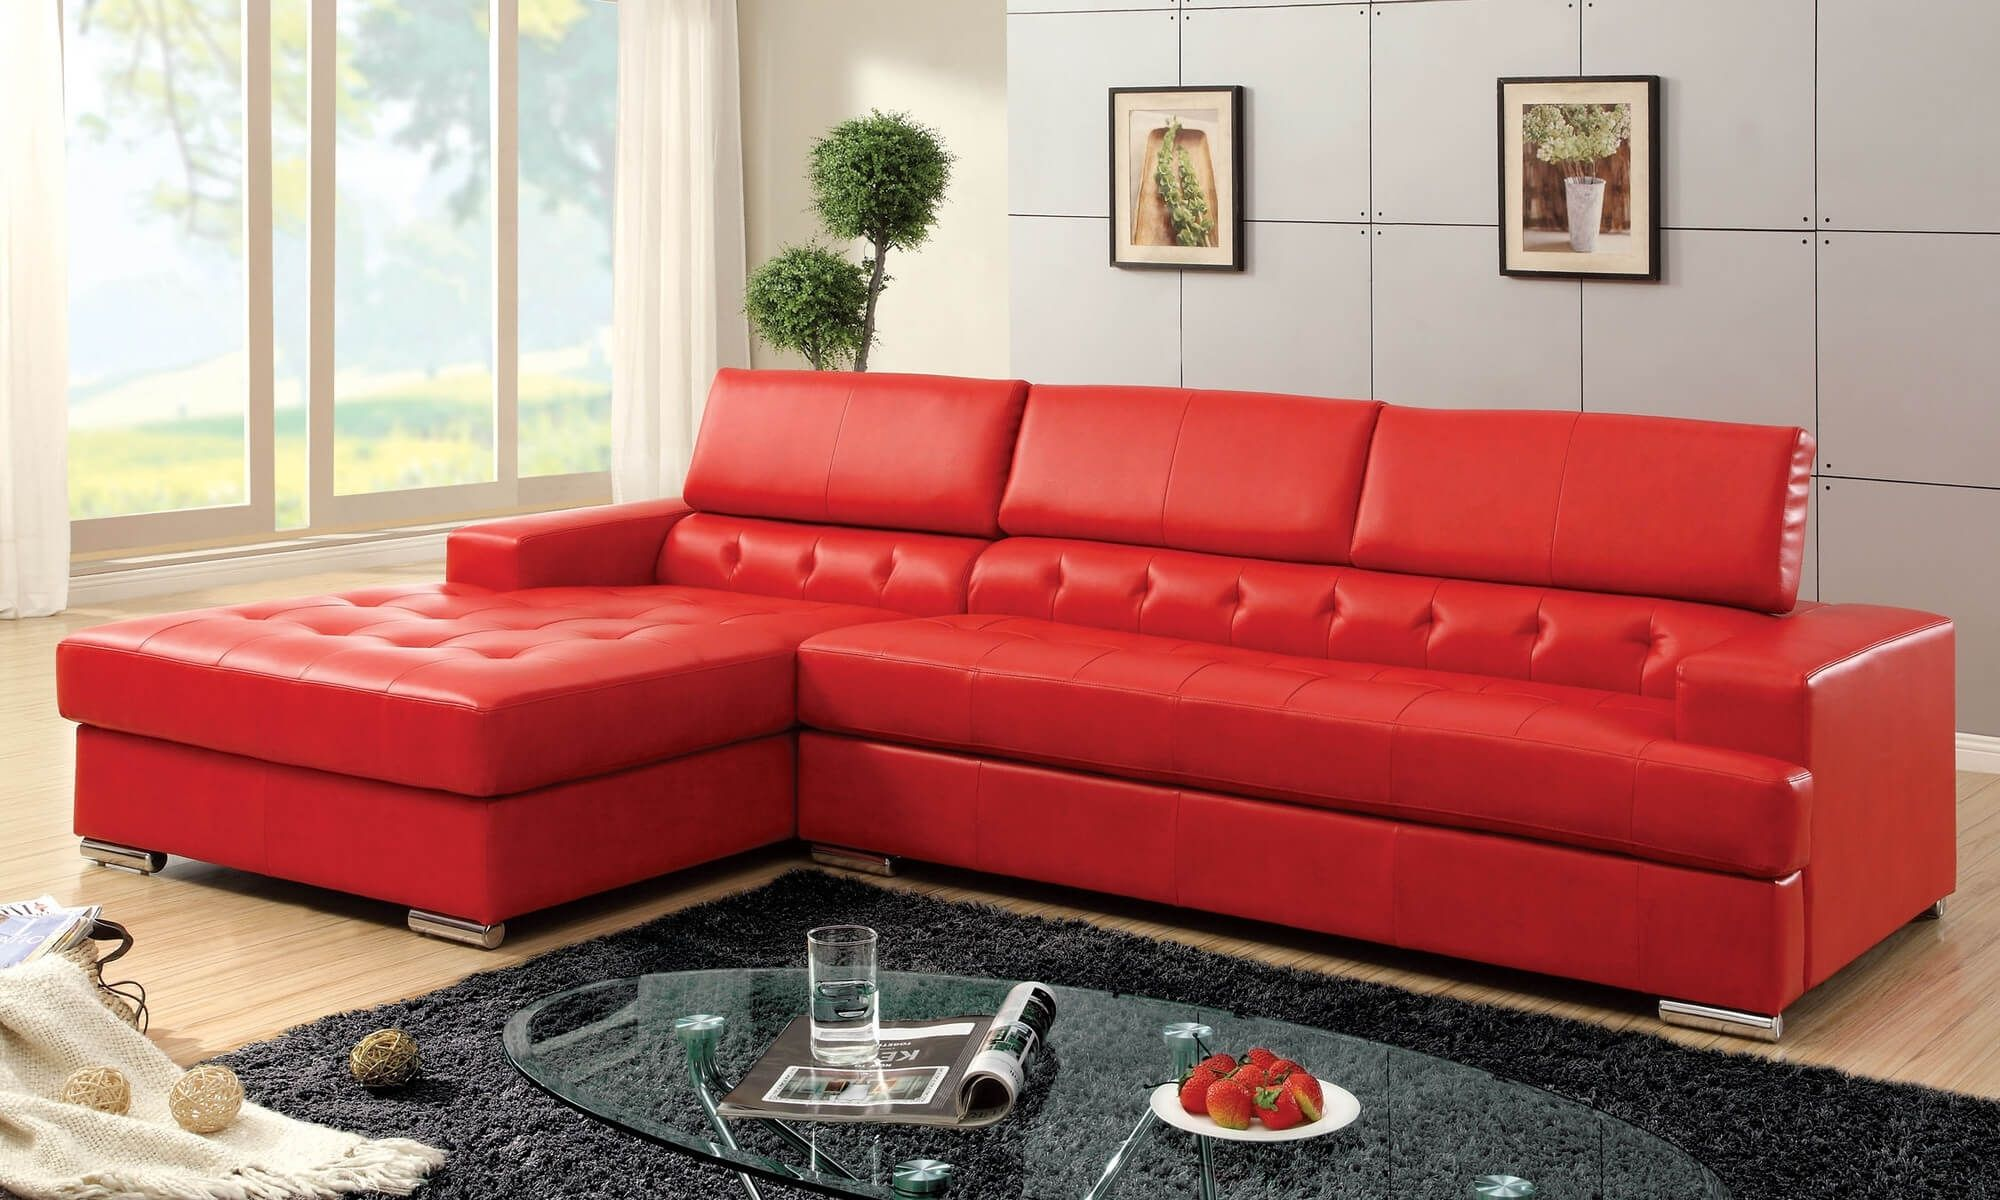 Modern Red Leather Sectional Sofa Red Sectional Sofa Red